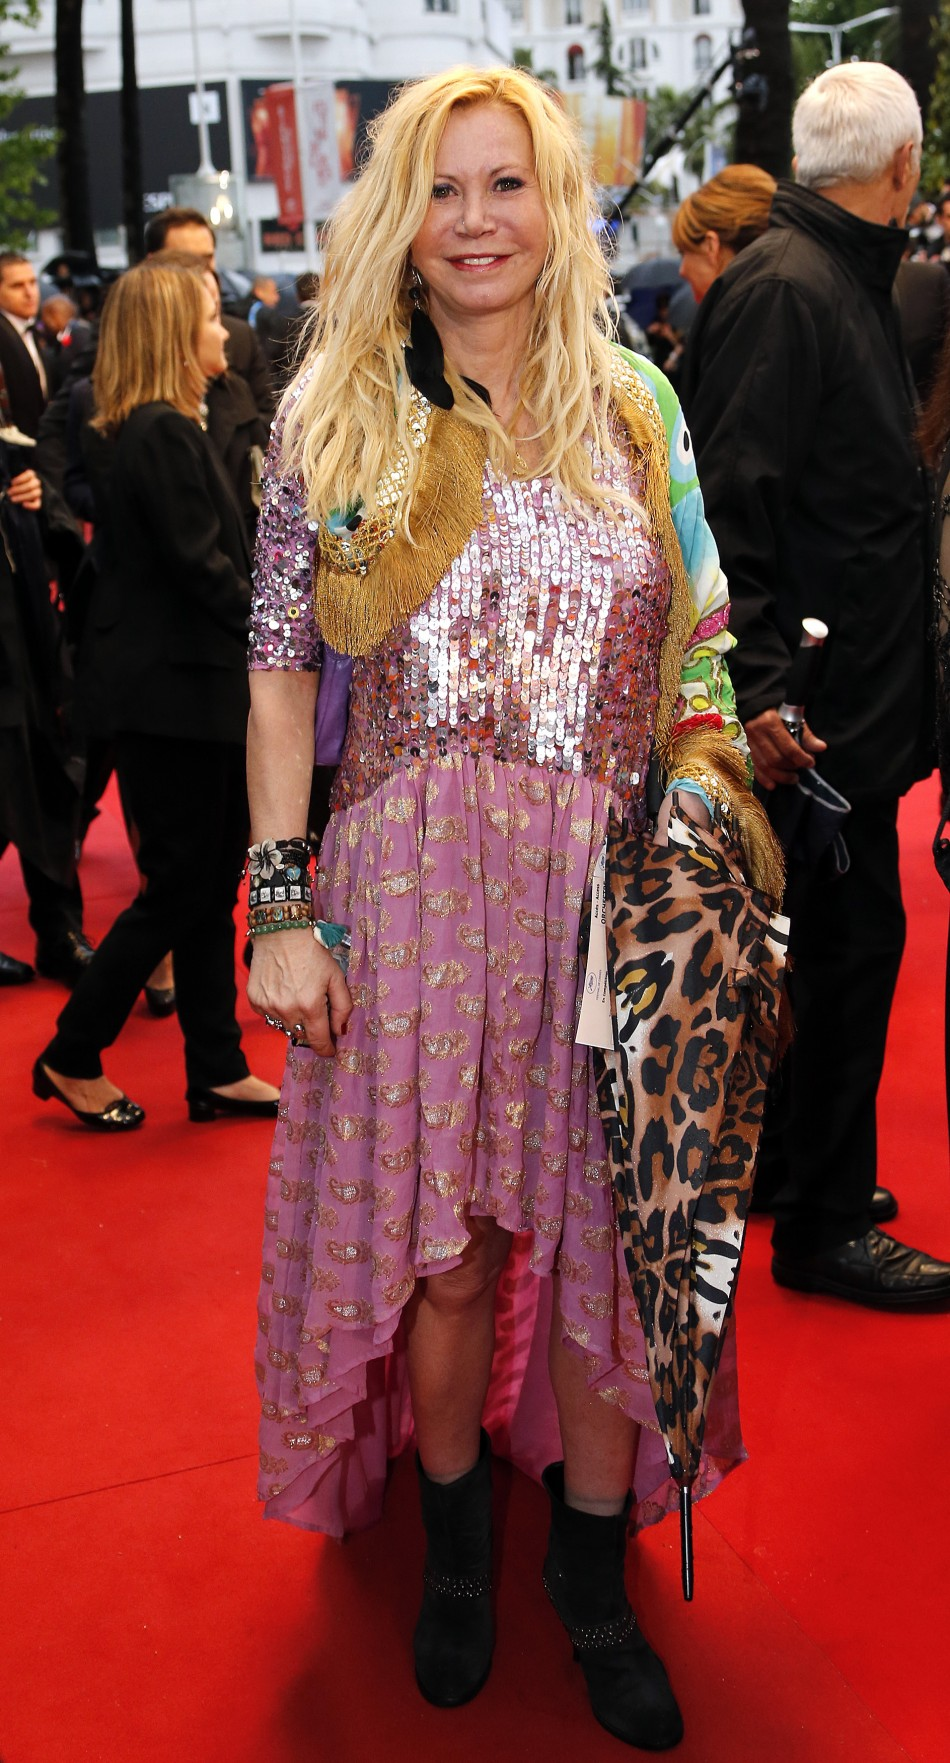 Actress Fiona Gelin poses on the red carpet as she arrives for the screening of the film Jimmy P. Psychotherapy of a Plains Indian in competition at the 66th Cannes Film Festival in Cannes May 18, 2013.